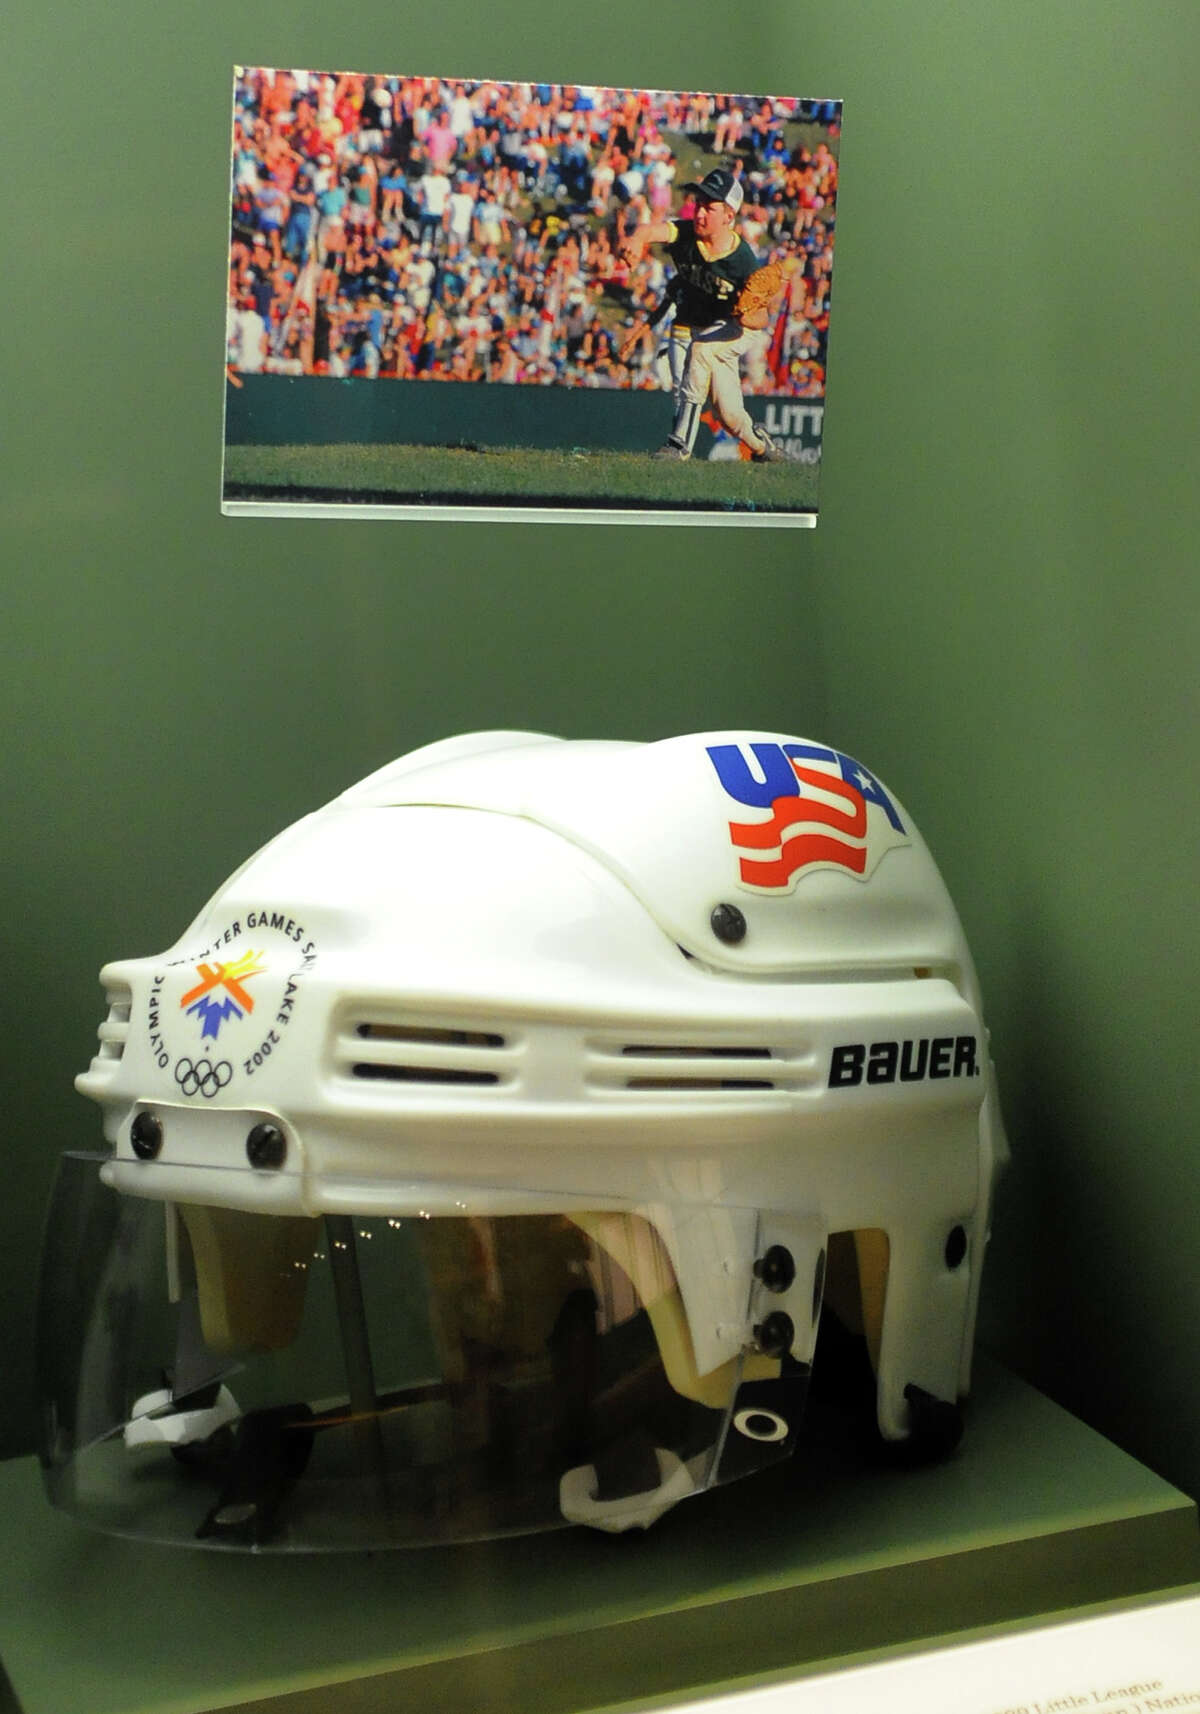 Chris Drury's spot featuring his NHL helmet as part of the Hall of Excellence in the Little League World Series Museum in Williamsport, Pa. on Thursday August 22, 2013. Drury was a pitcher with Trumbull that won the series in 1989.